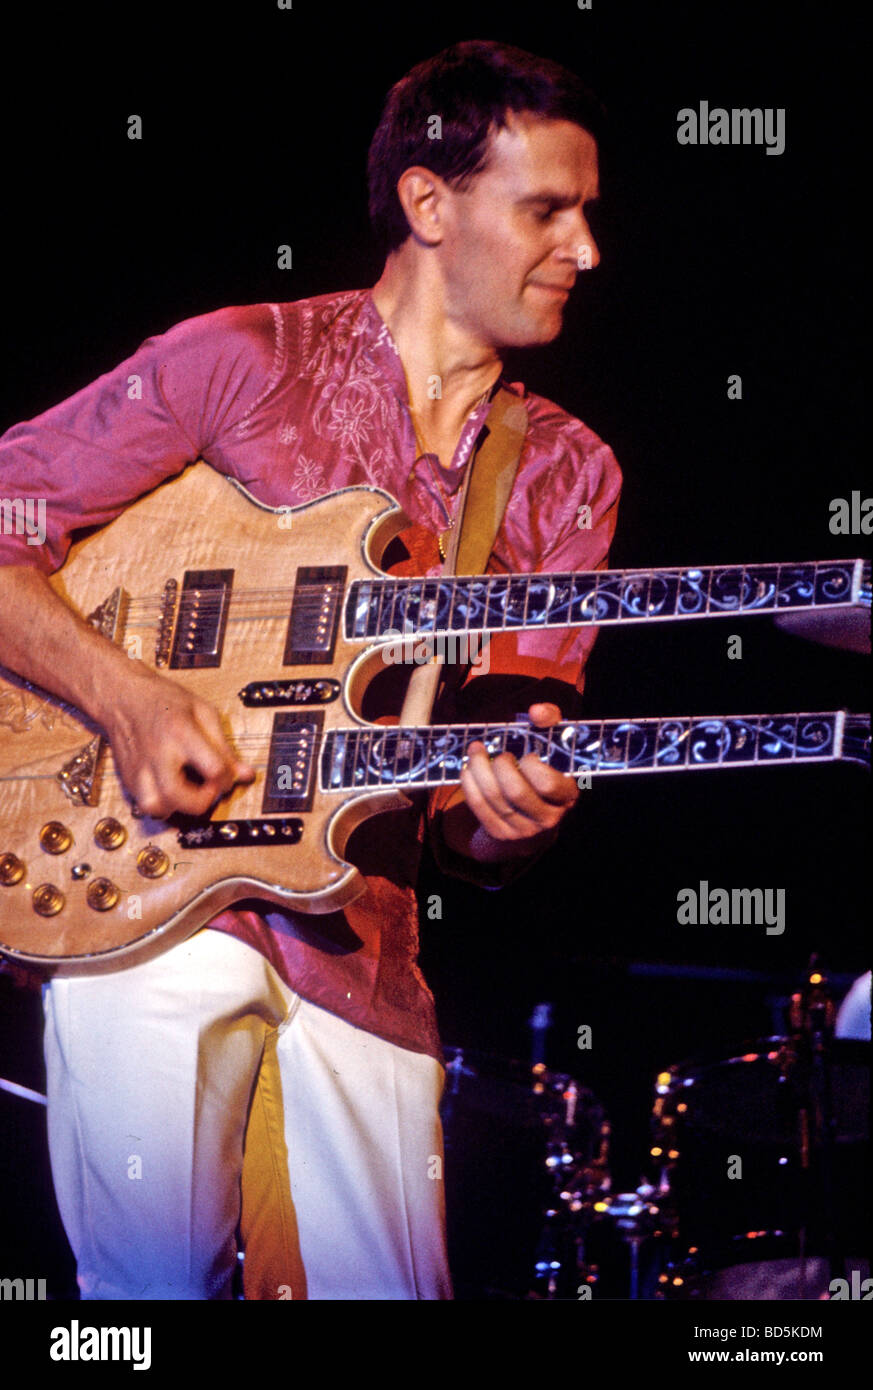 Jazz Pioneer - guitarist John McLaughlin 65